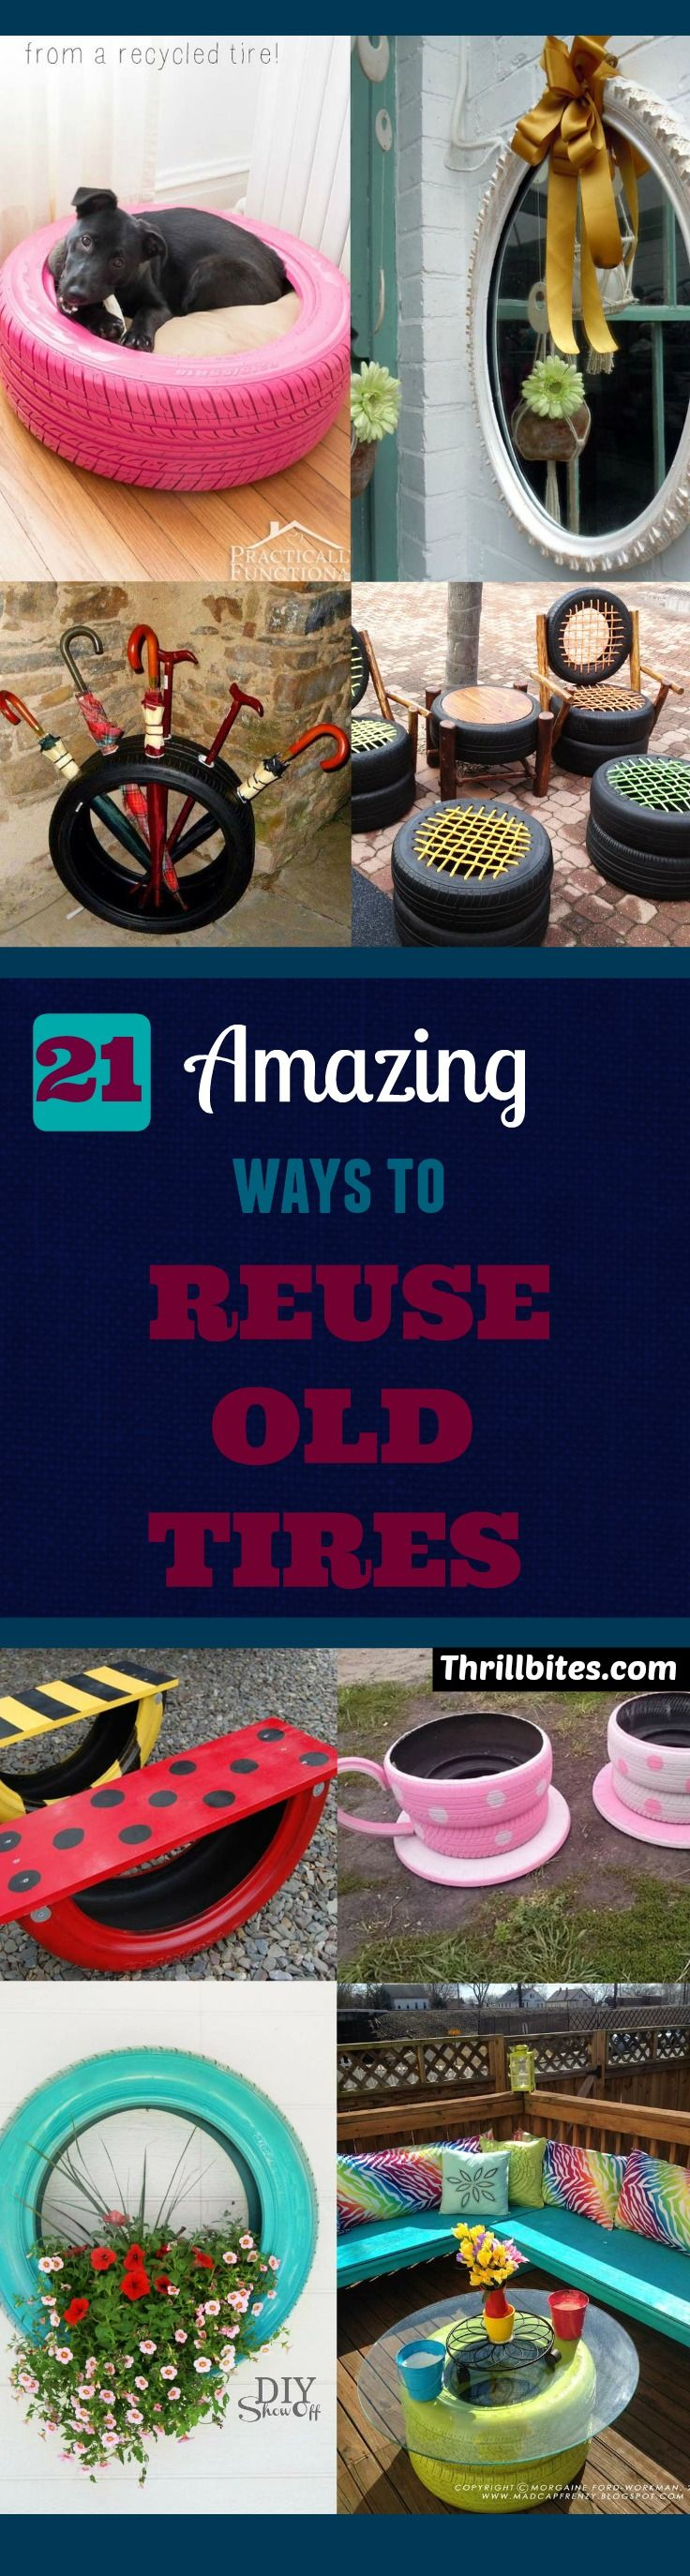 21 Super Amazing Ways To Reuse Old Tires | DIY Projects | DIY Crafts | DIY Ideas | Upcycling